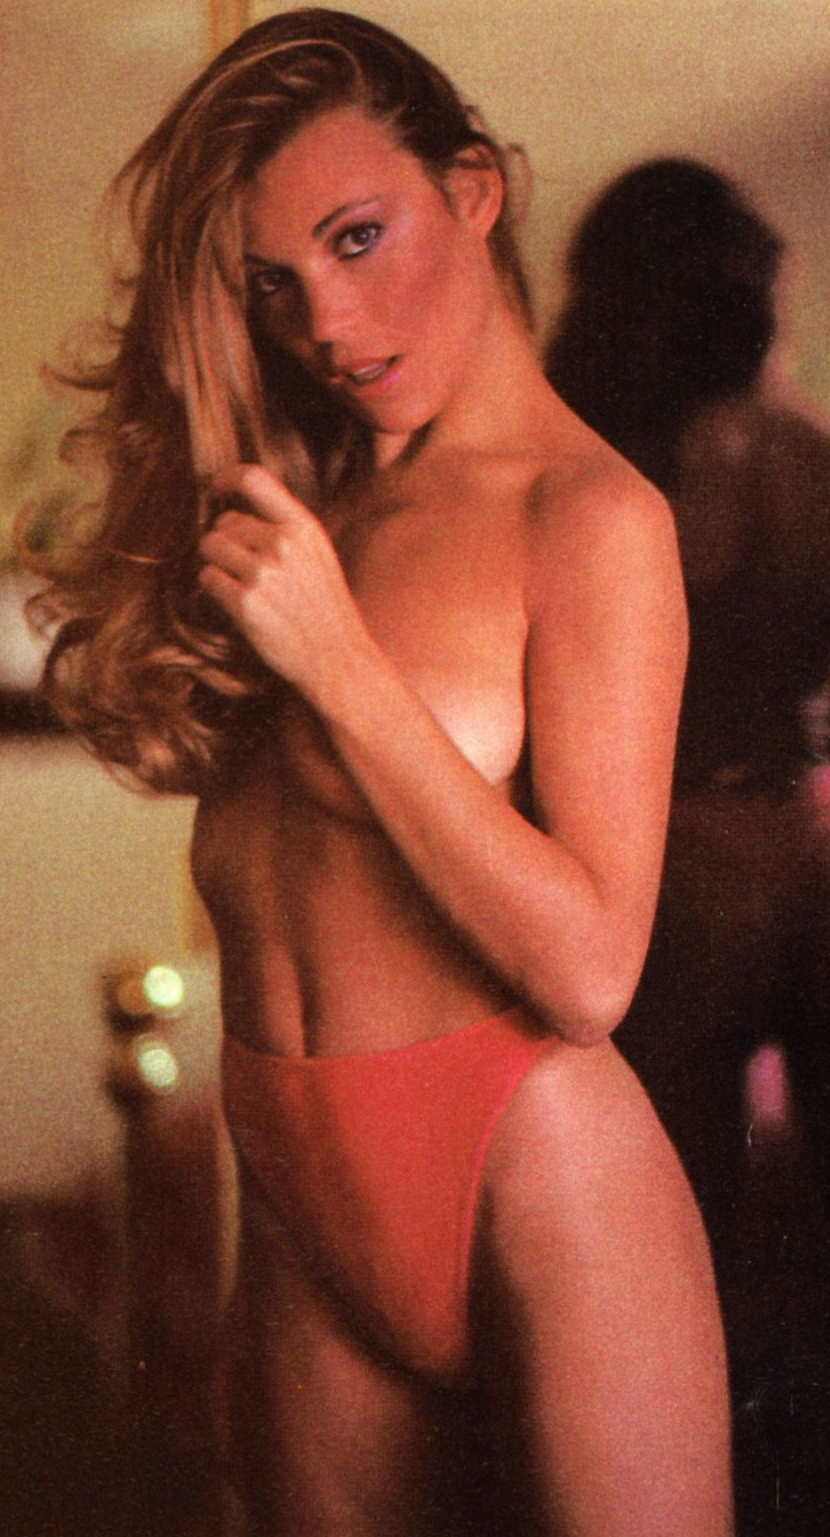 Vanna White Nude Photo Good miley cyrus eyebrows: vanna white (game show nudity)